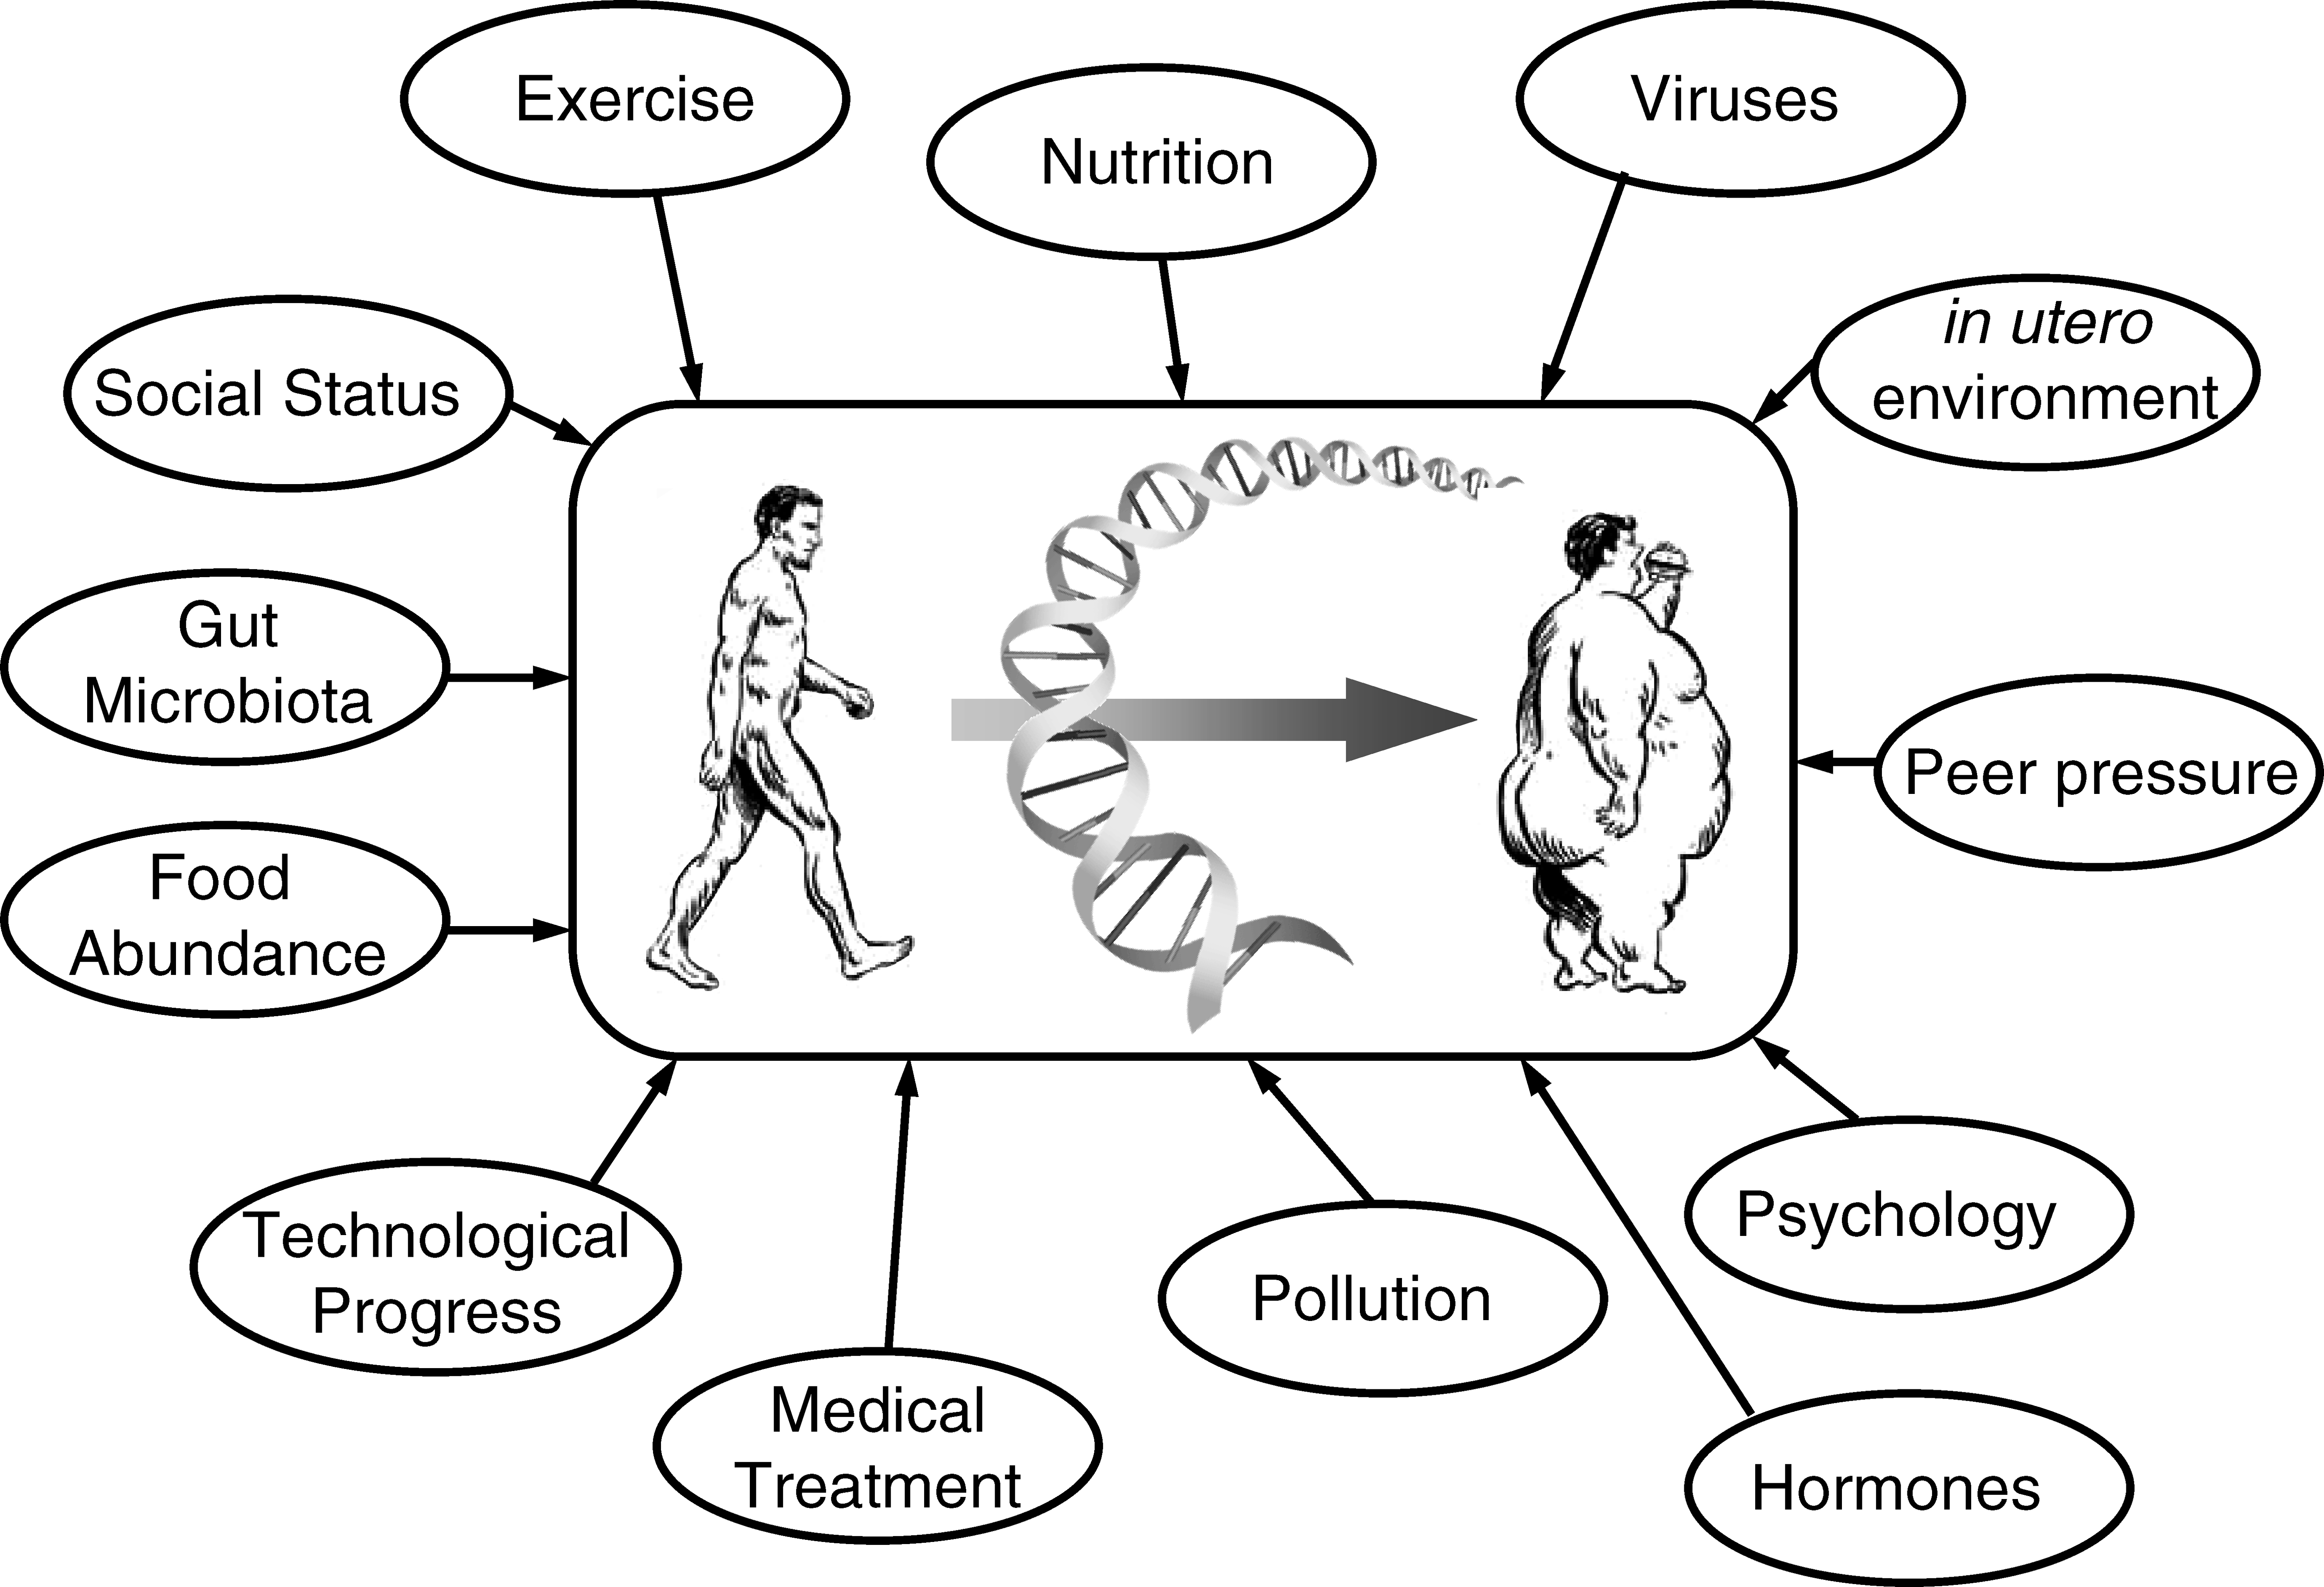 The complex interactions underlying polygenic obesity demonstrate that genetic, social, behavioral, and environmental factors are all capable of influencing the obese phenotype. The DNA strand should be interpreted as taking into account both genetic poly